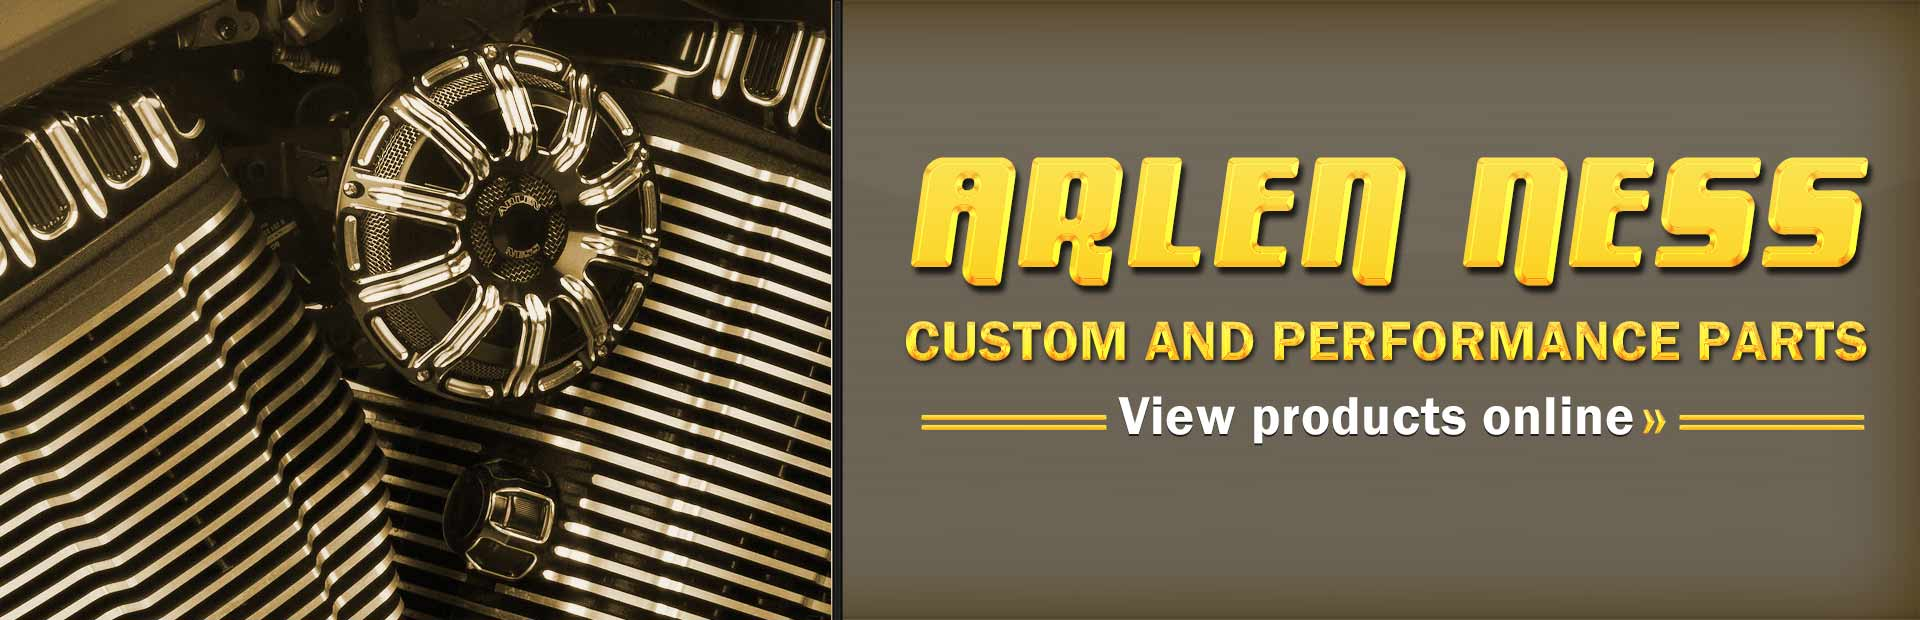 Click here to view Arlen Ness custom and performance parts online.